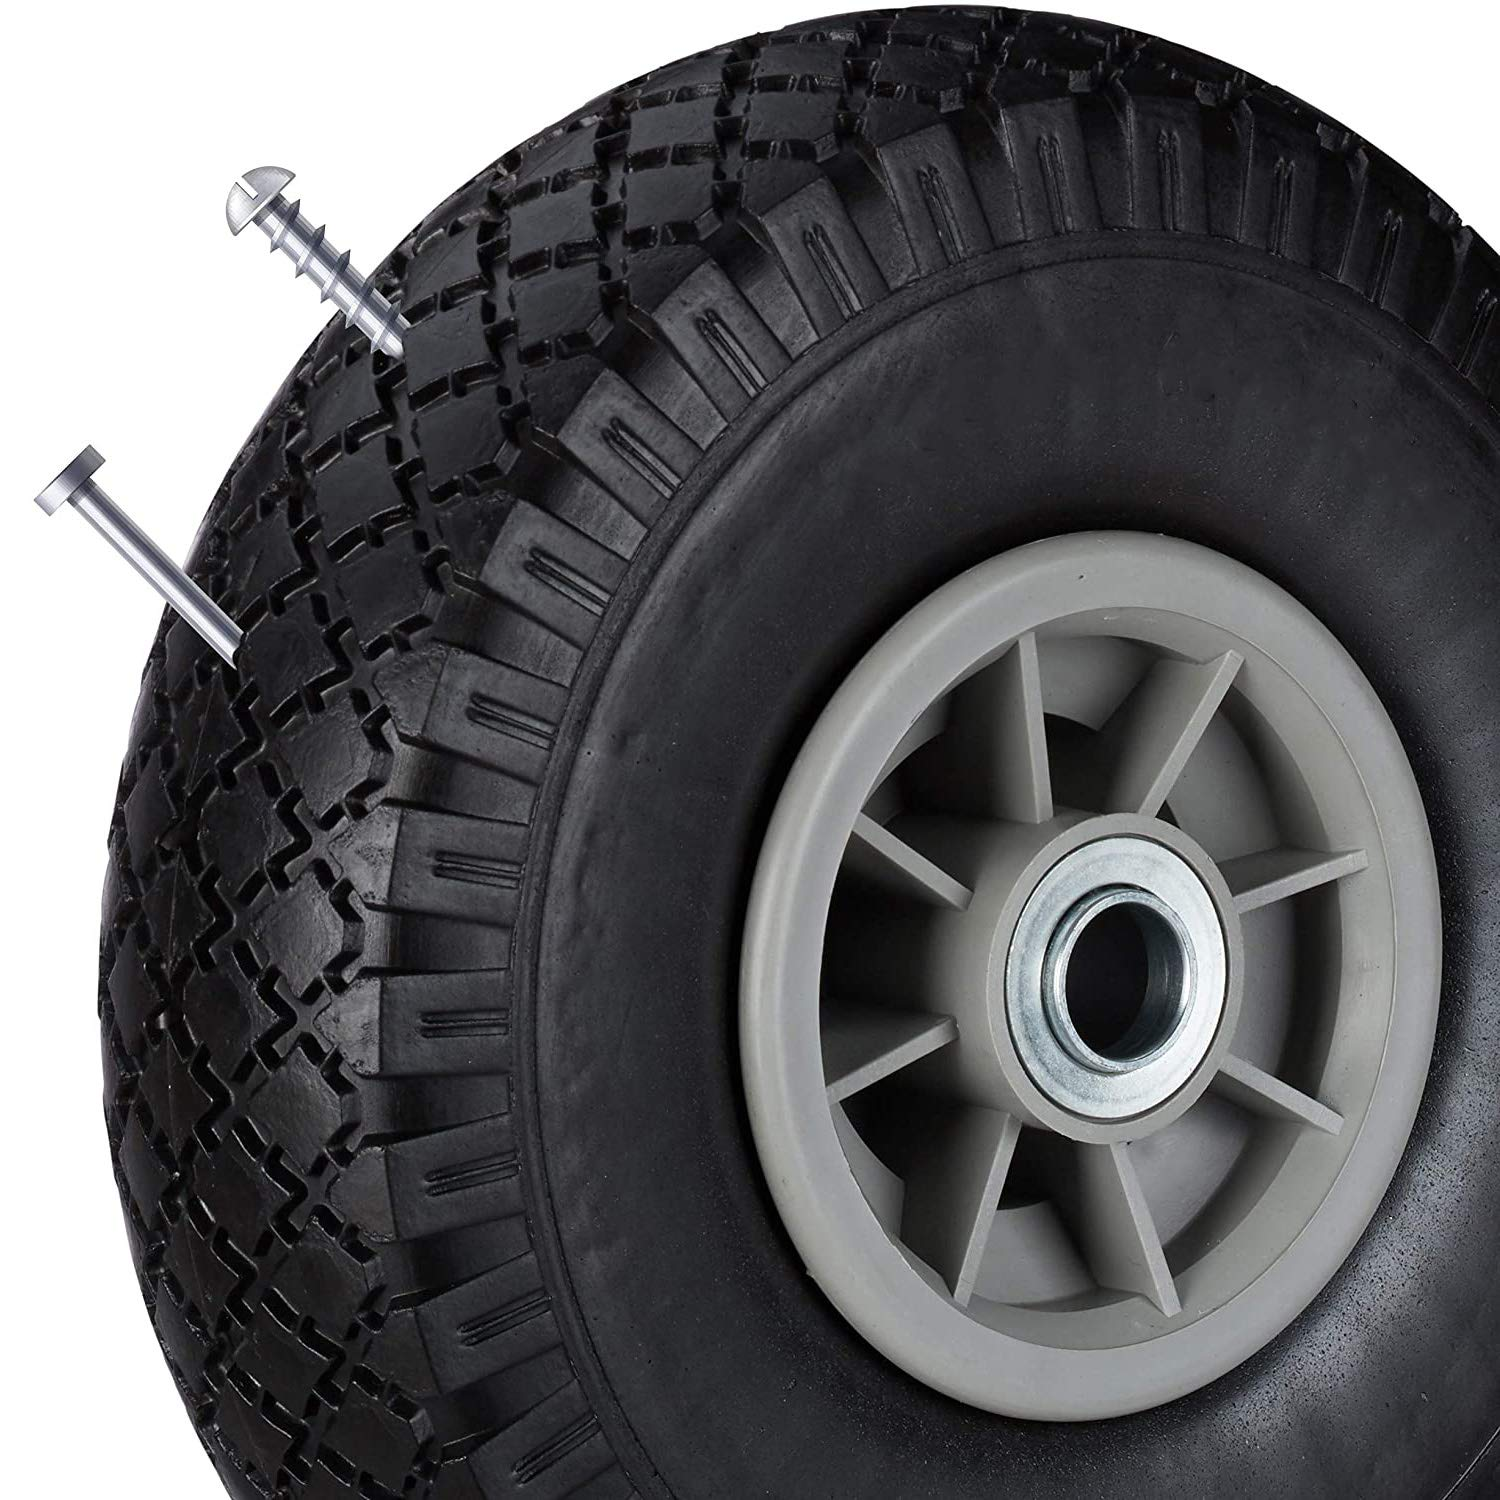 SAPOIGUANA sack cart wheel 360 x 75 mm up to 80 kg 3.50-8 inches puncture-proof solid rubber tires 20 mm axle black-gray